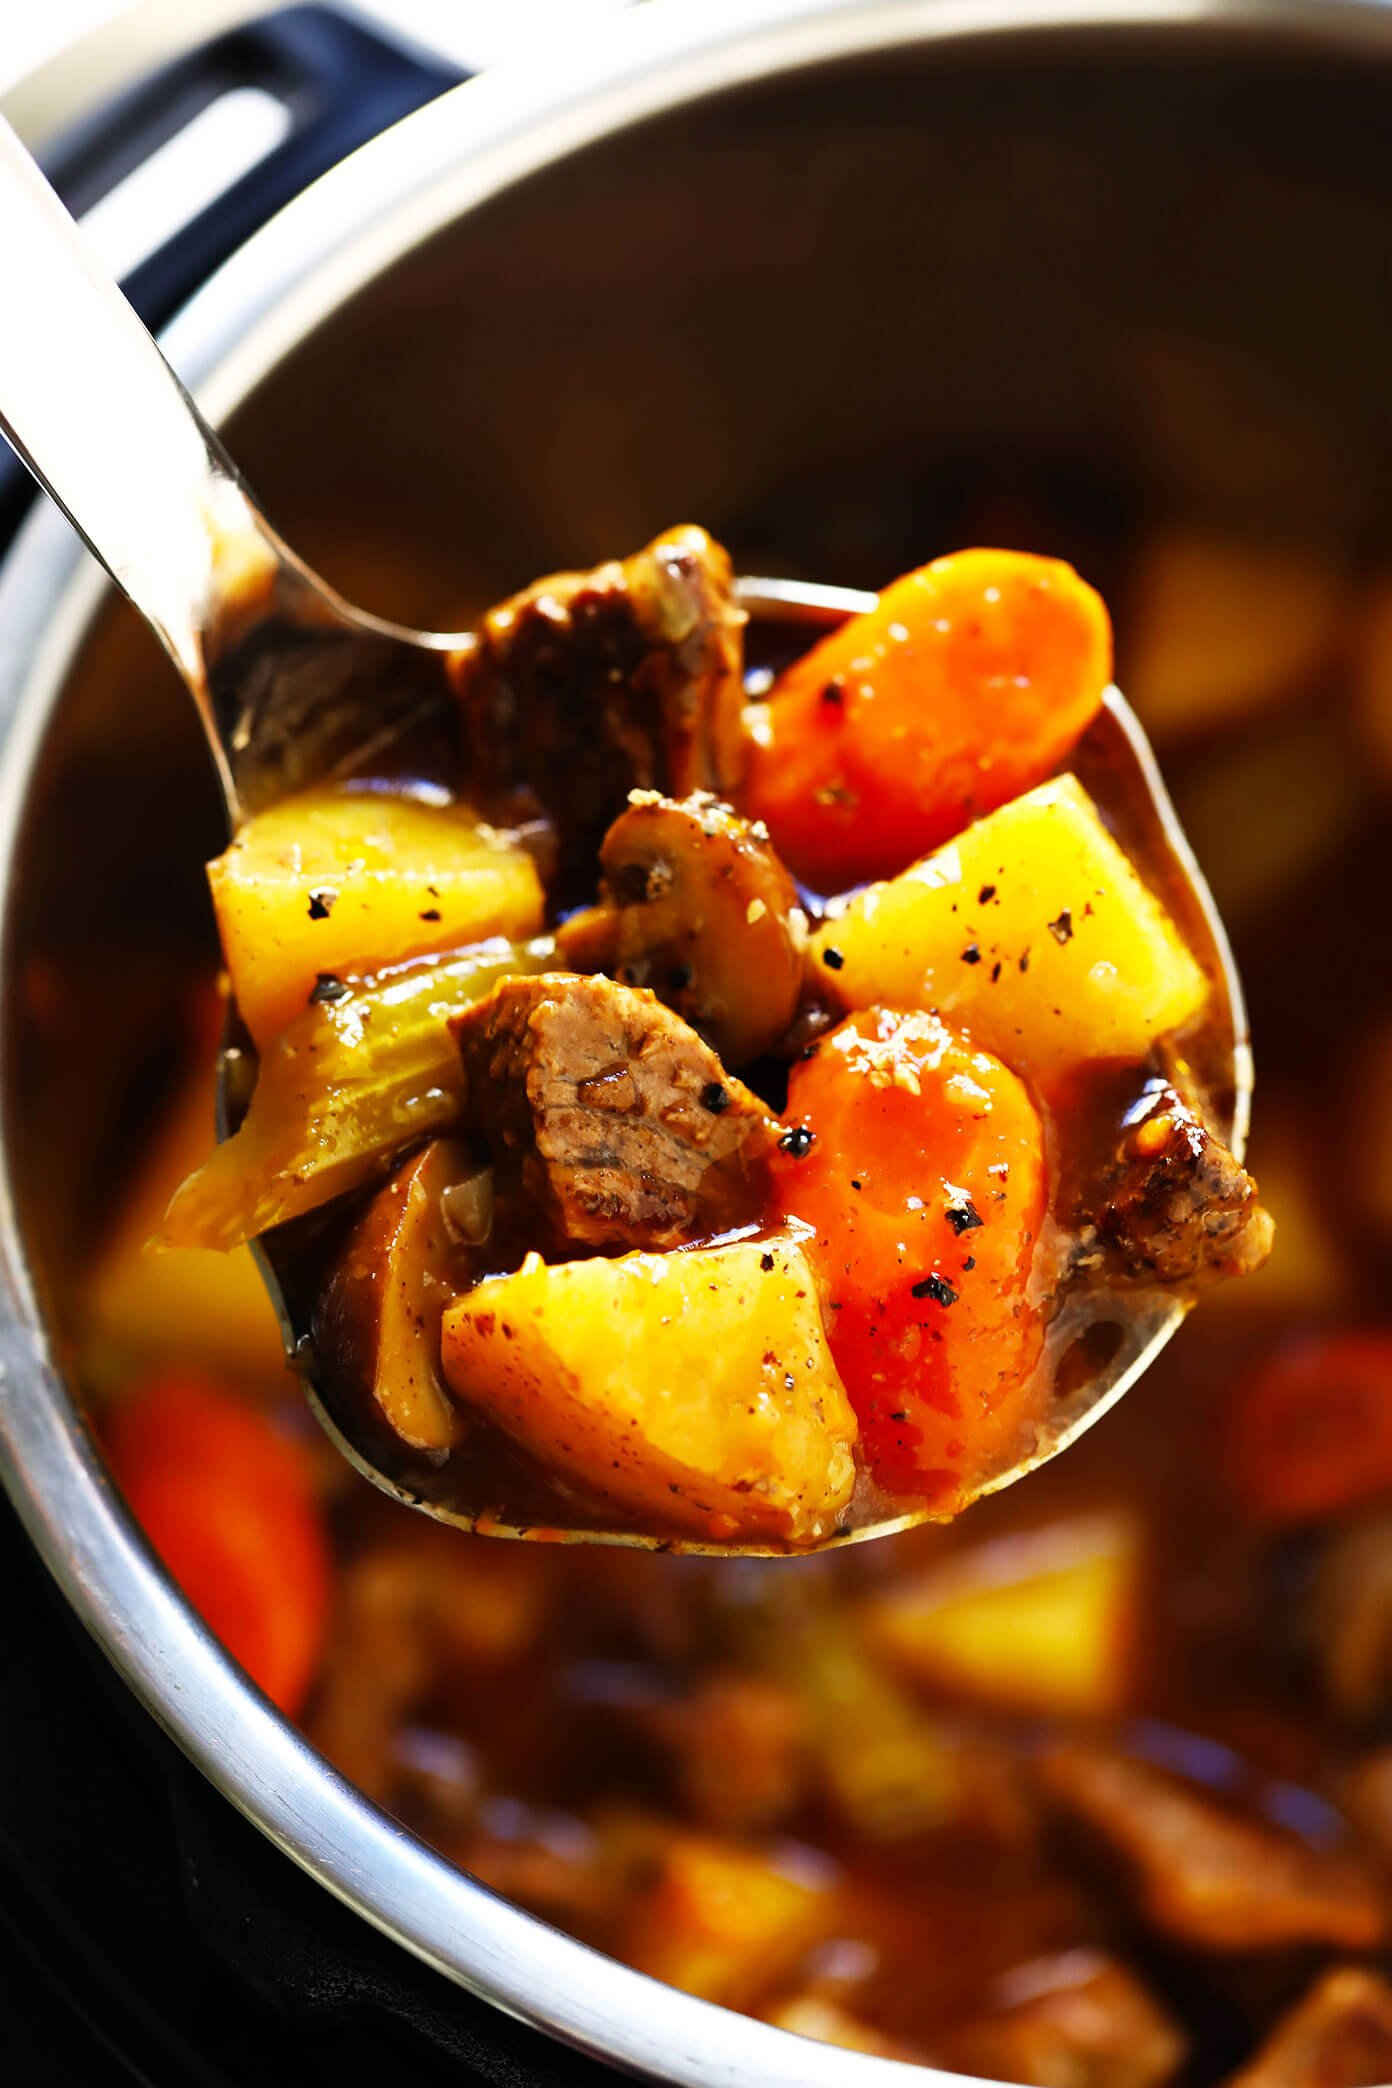 Beef Stew Recipe (Crock Pot or Instant Pot)